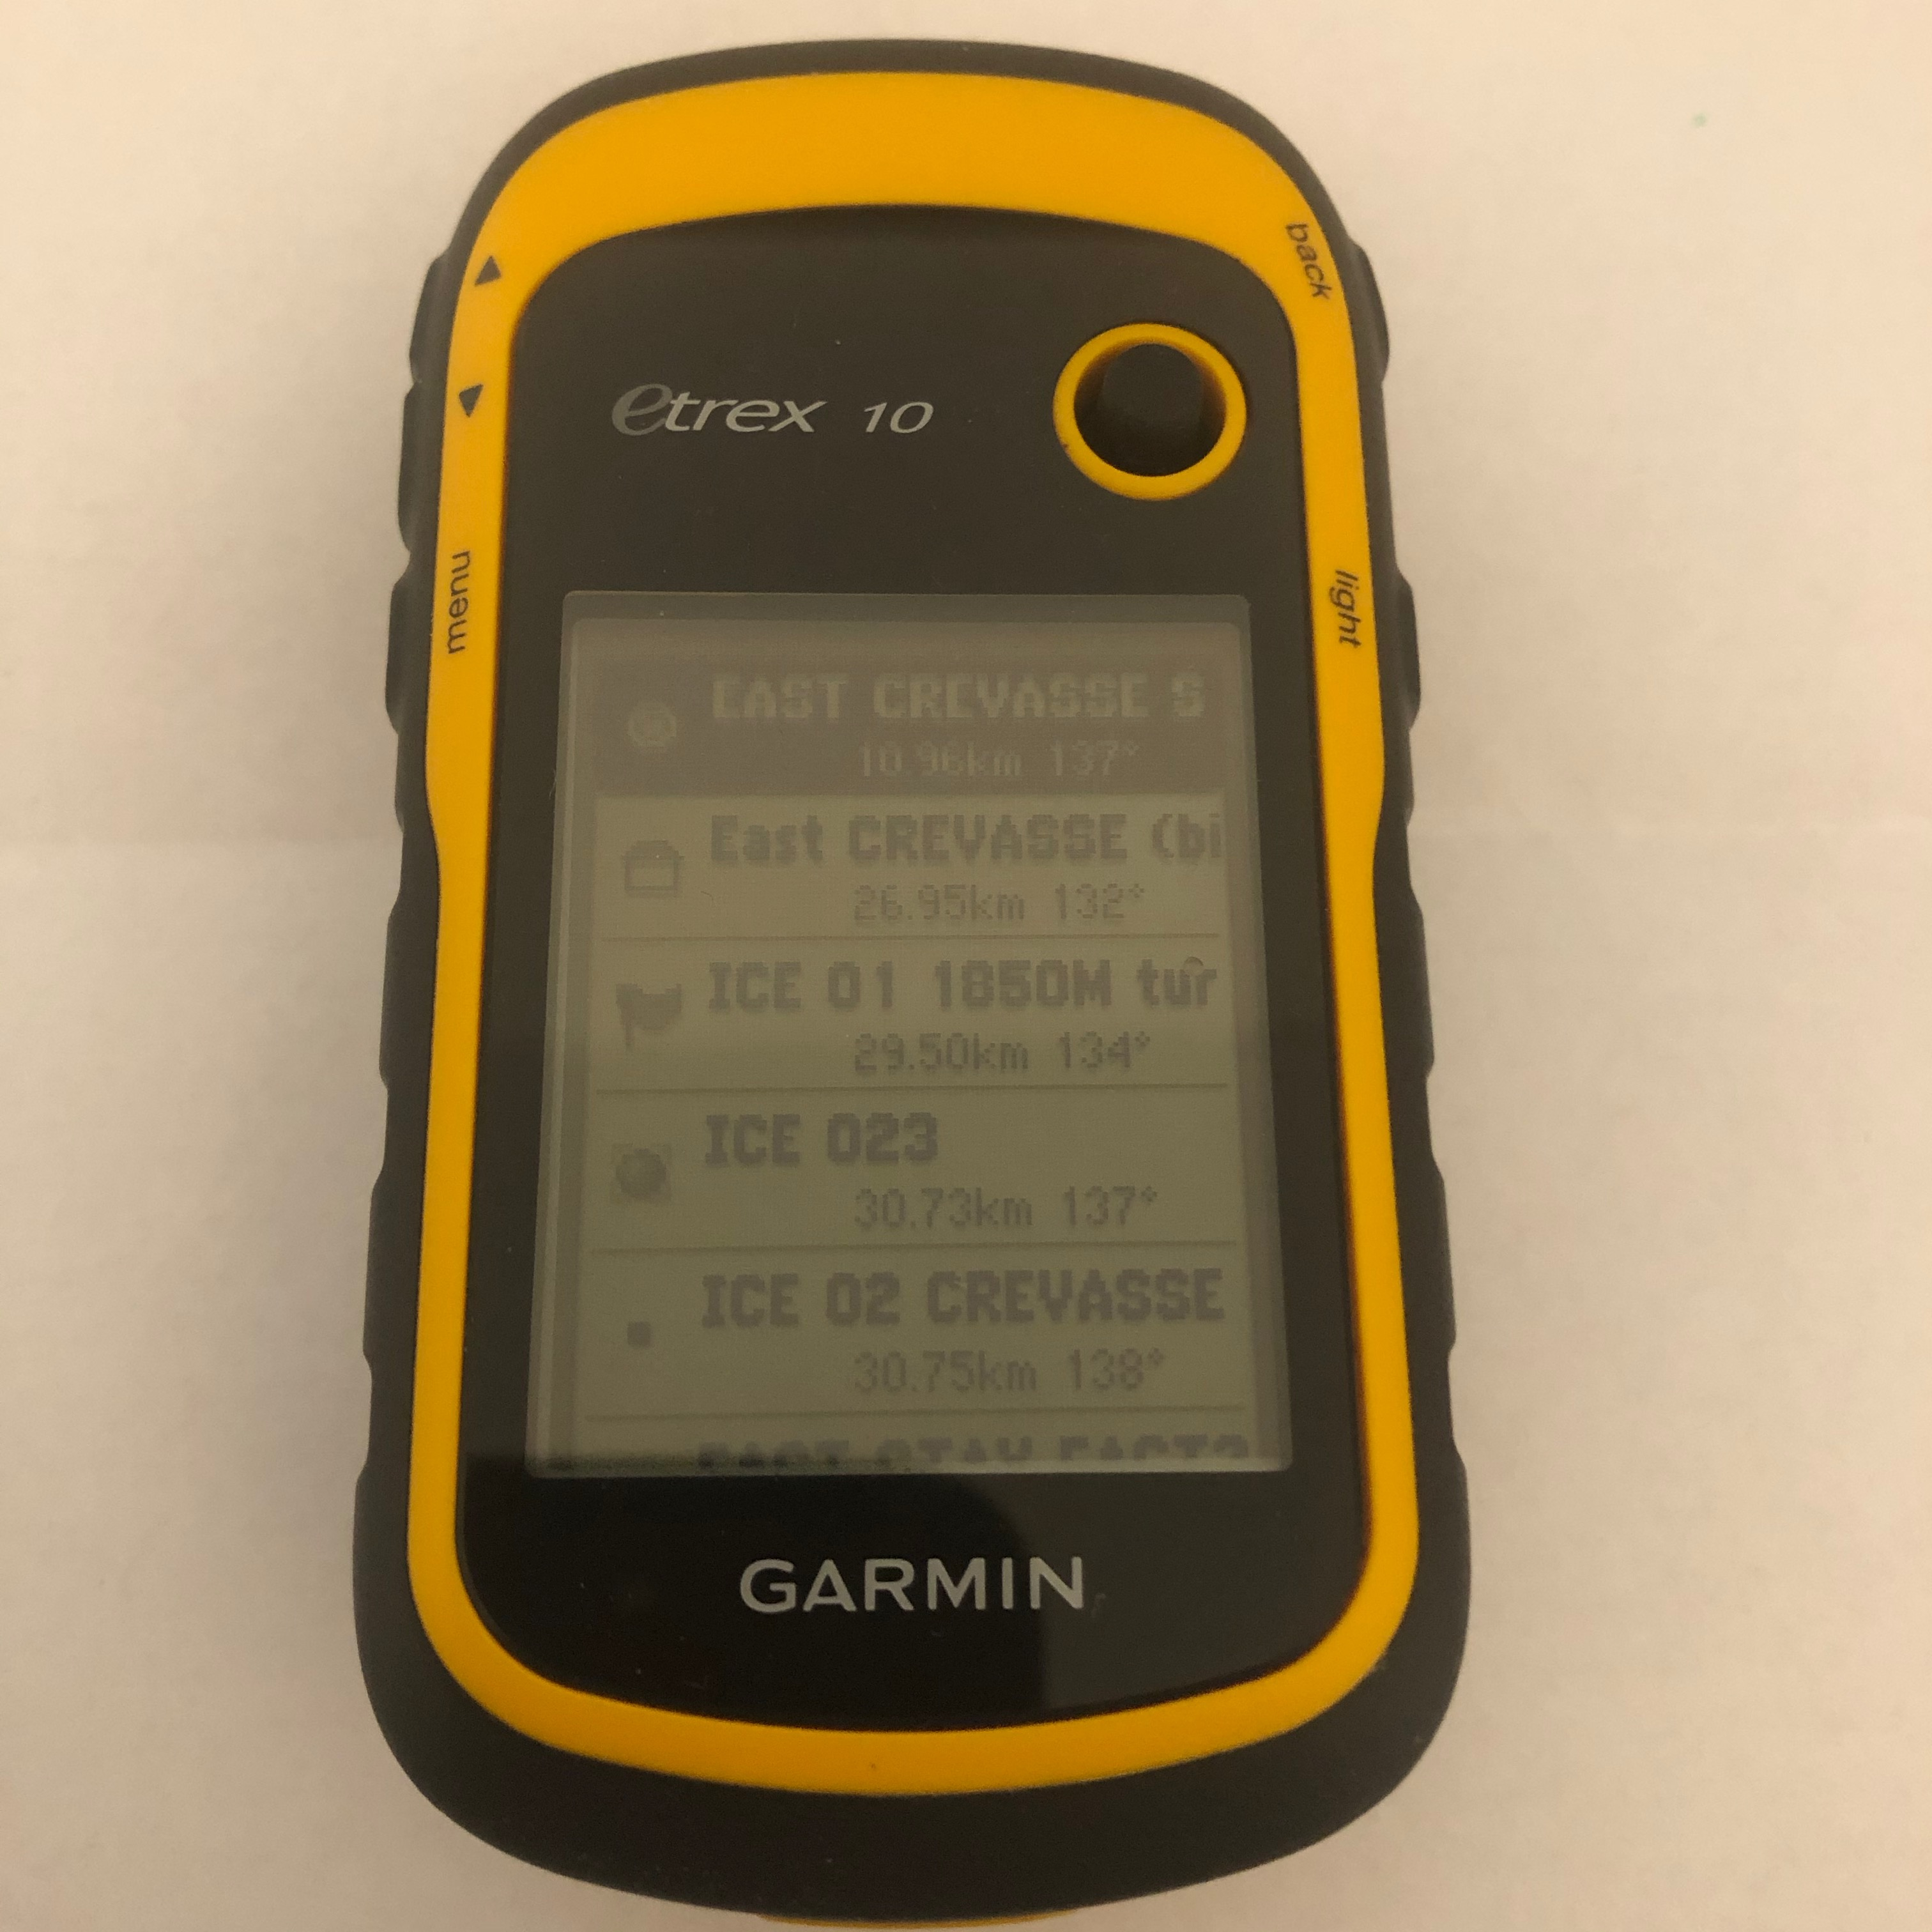 Garmin etrex 10 review - one of the best hiking gps units you can buy.